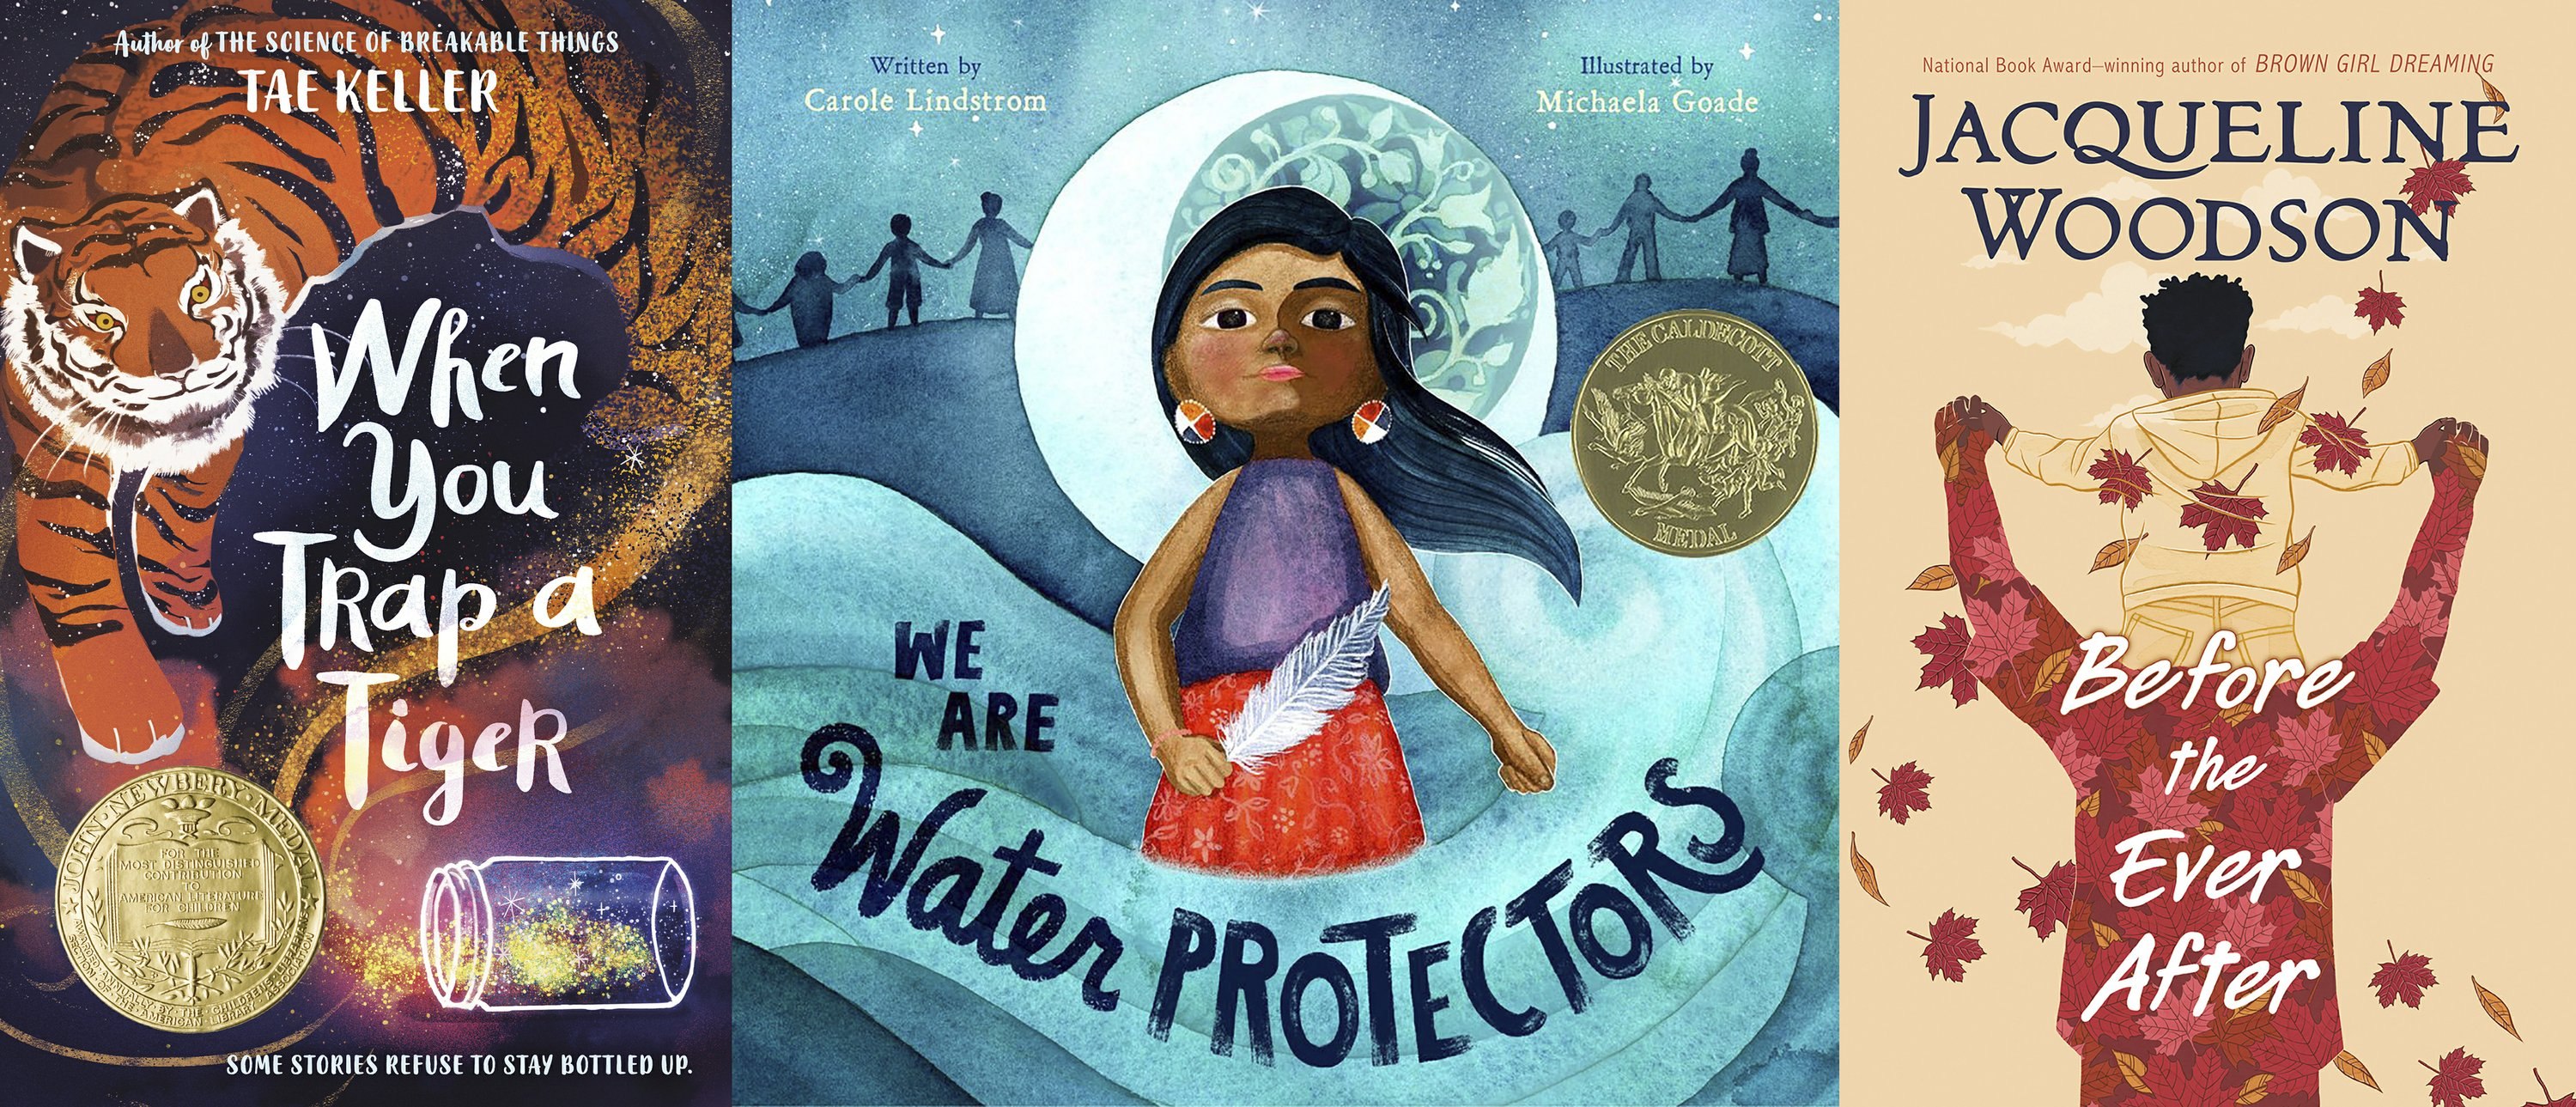 Goade becomes first Native American to win Caldecott Medal